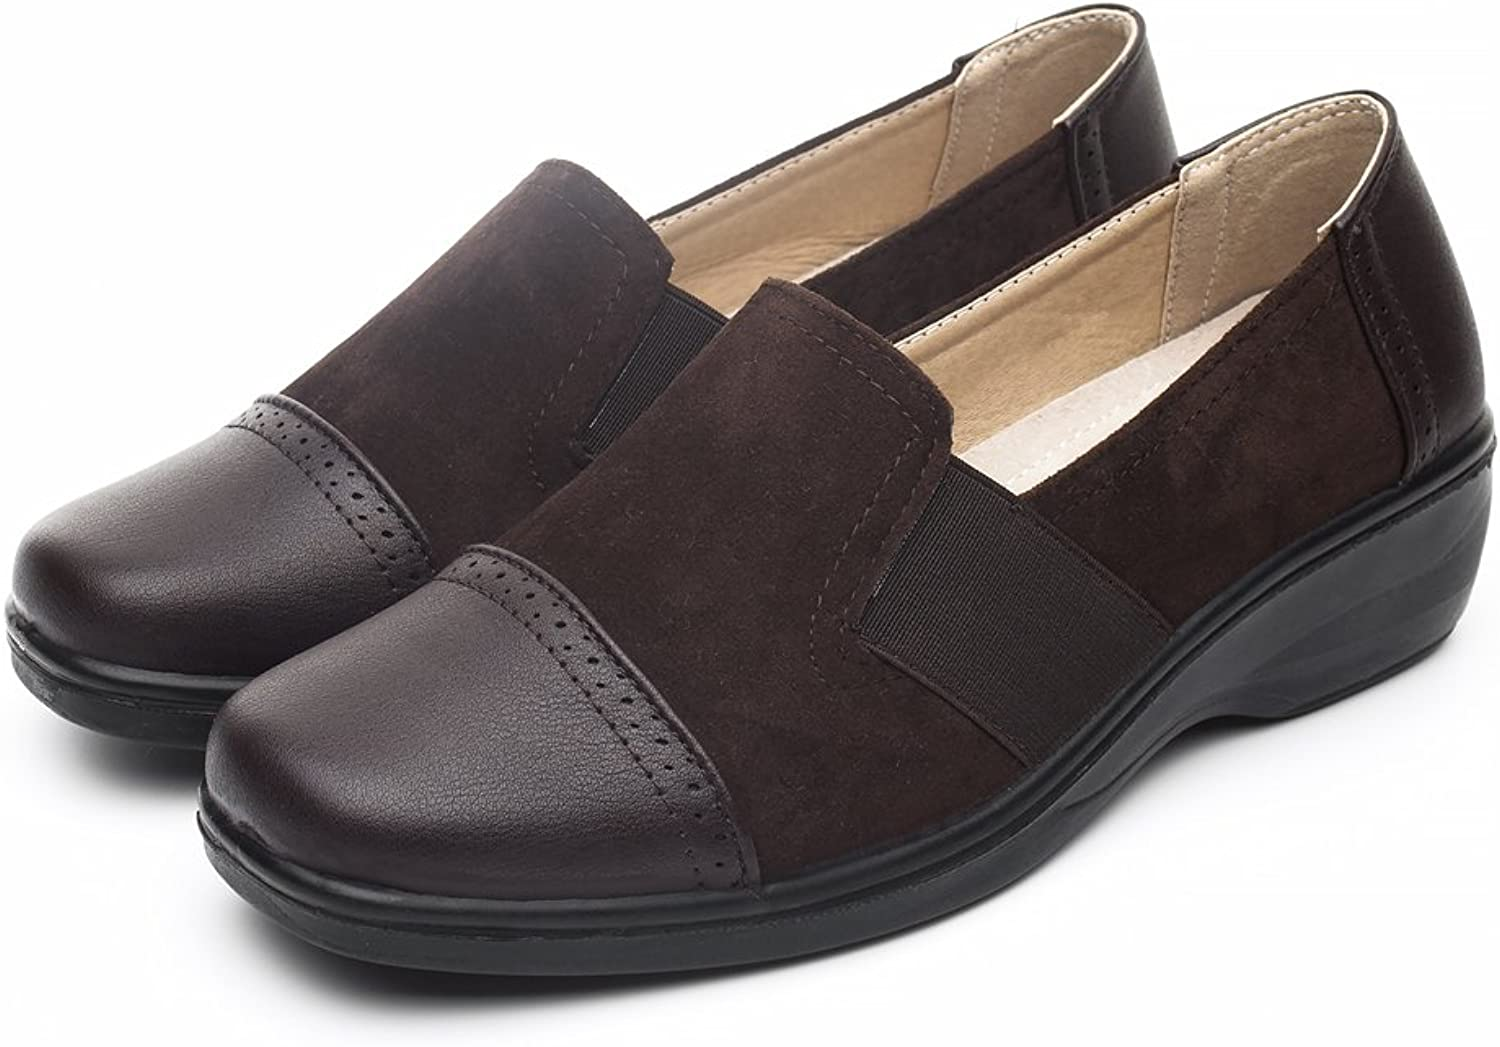 DRKA Women's Casual Loafer Comfort Slip On Flat shoes